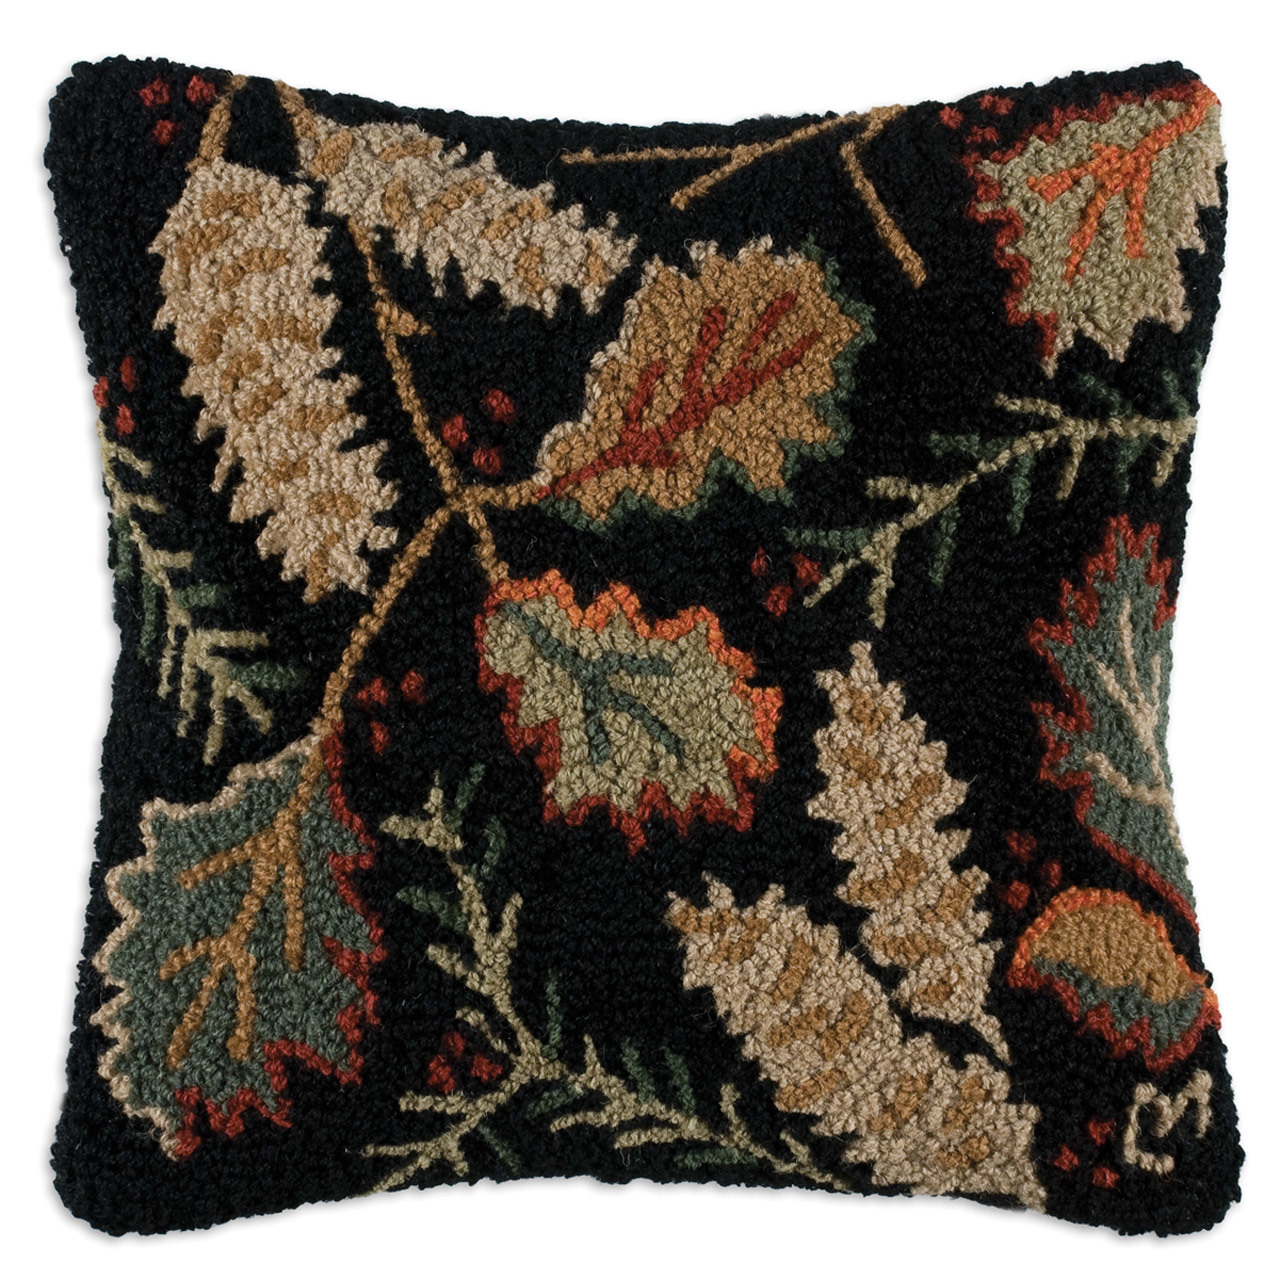 forest floor oak leaves pine needles and cones chandler 4 corners throw pillow